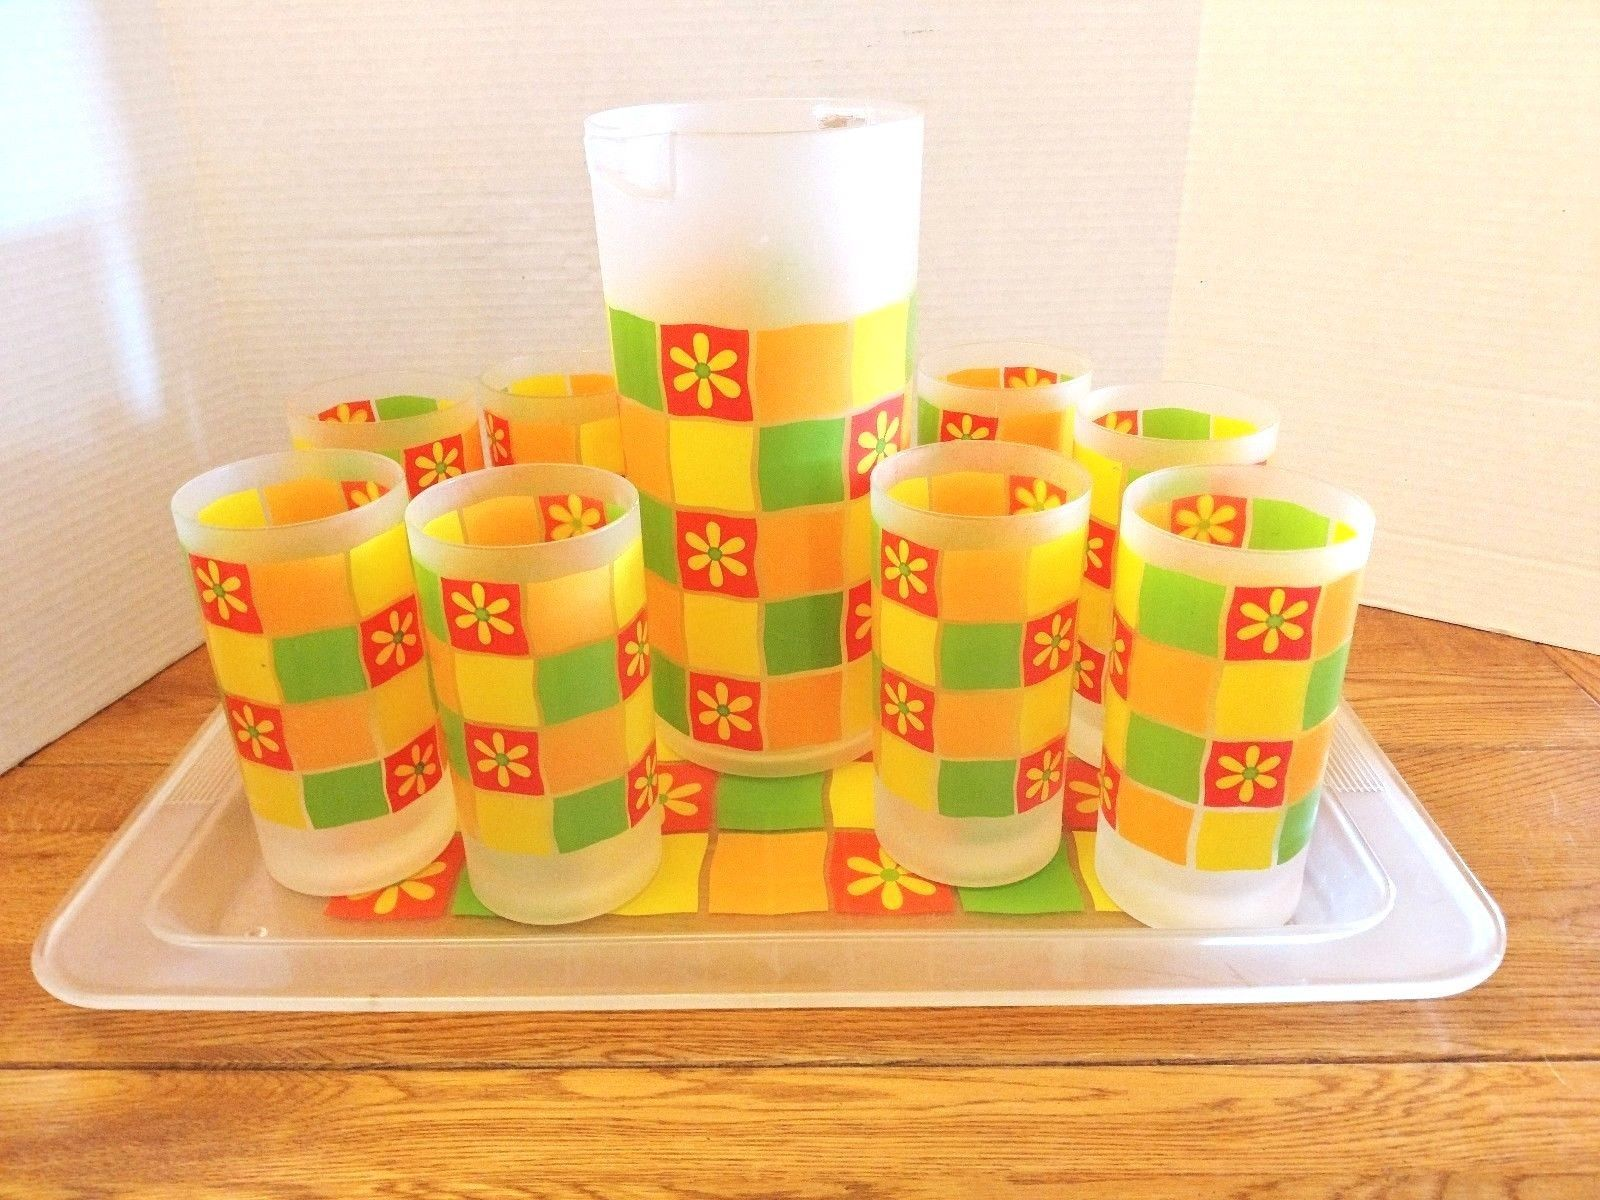 Beverage Serving Set Pitcher, 8 Tumblers, Matching Tray Colorful Vintage Plastic